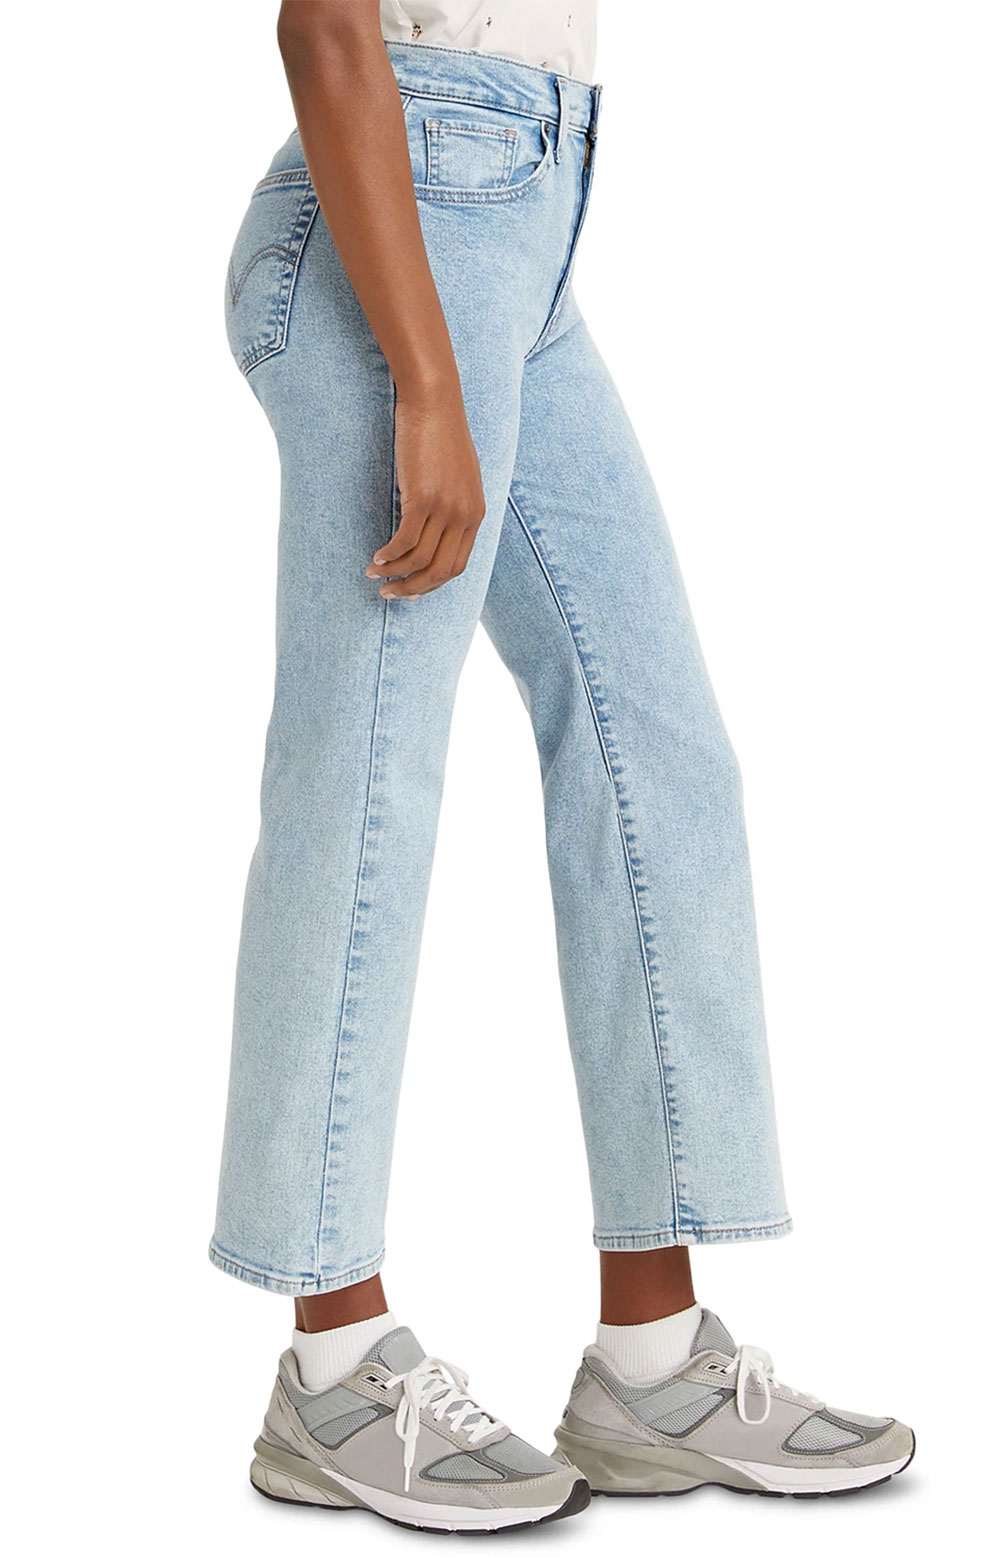 (A0967-0001) High Rise Cropped Flare Jeans - High Light/Light Wash  2